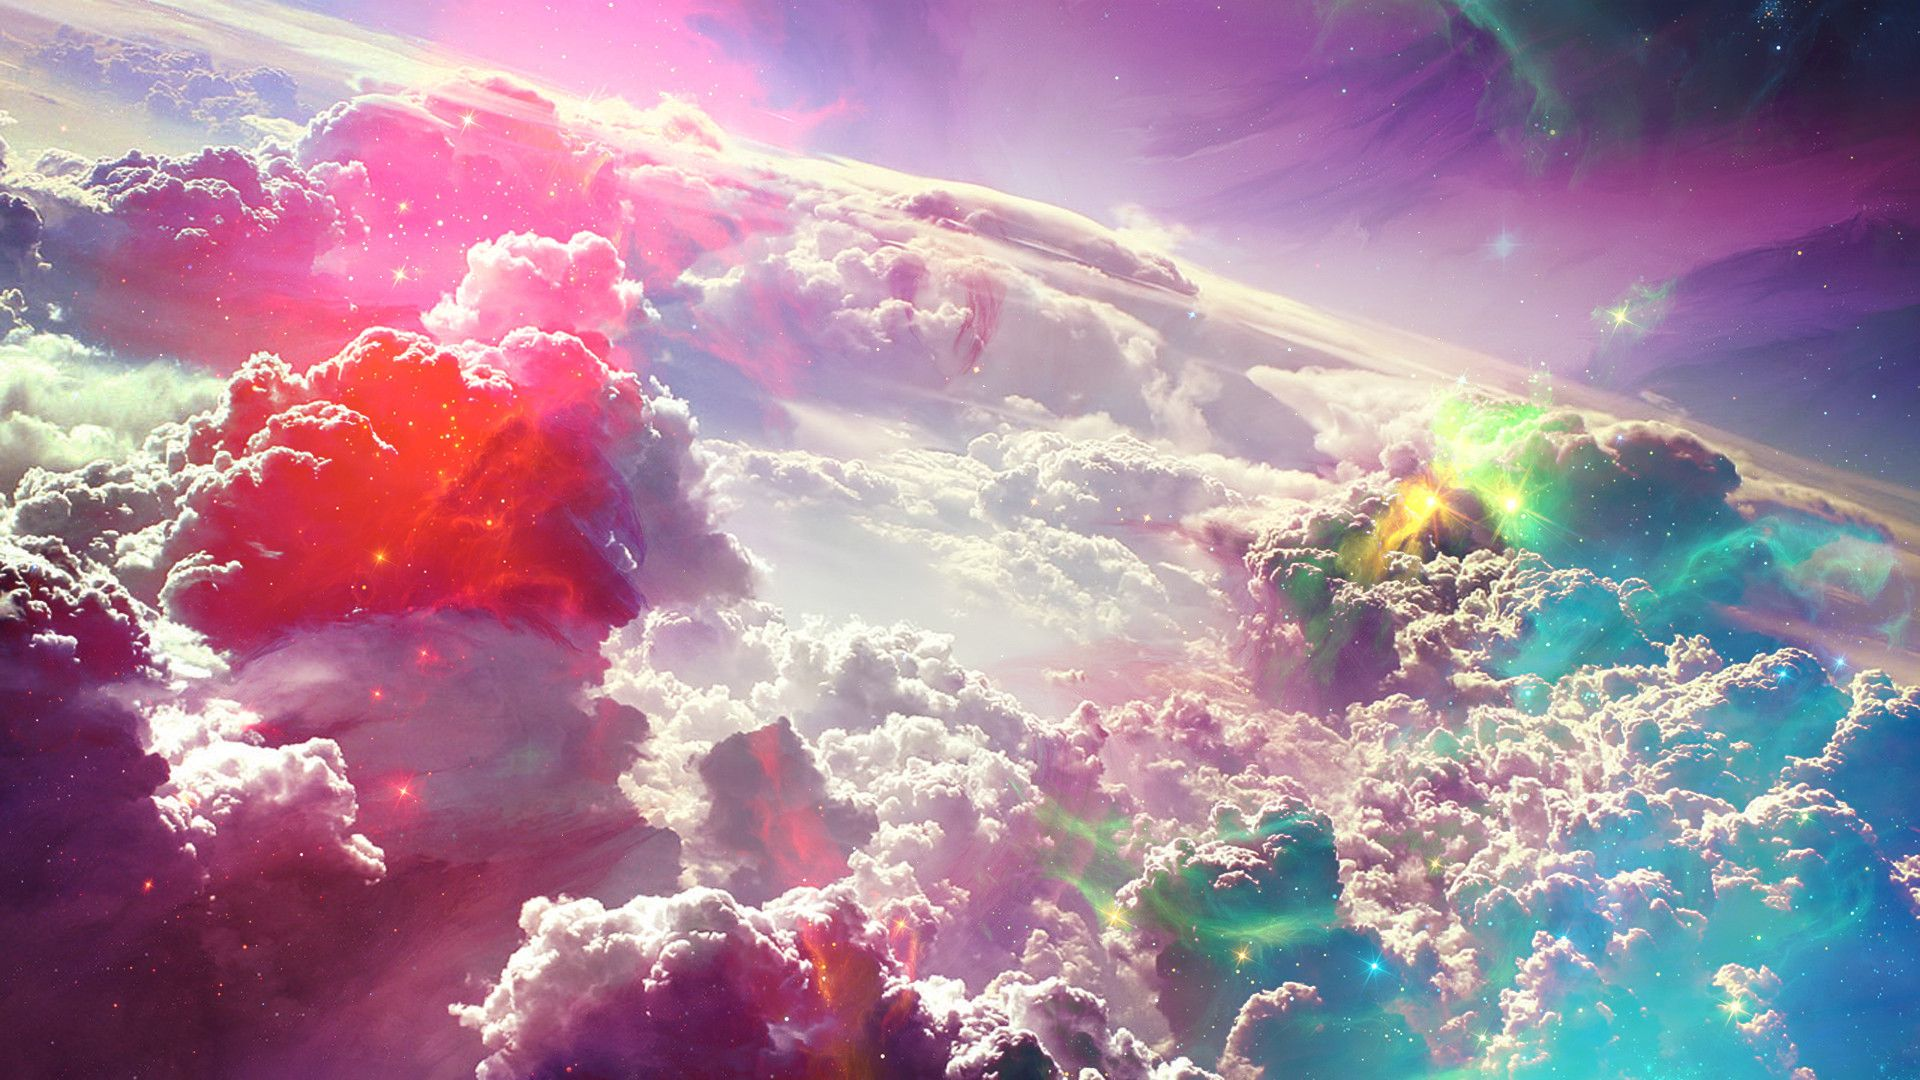 1920x1080 Colorful Fantasy Clouds Art Hd Wallpaper New Hd Wallpapers Colorful Clouds Space Art Cloud Wallpaper